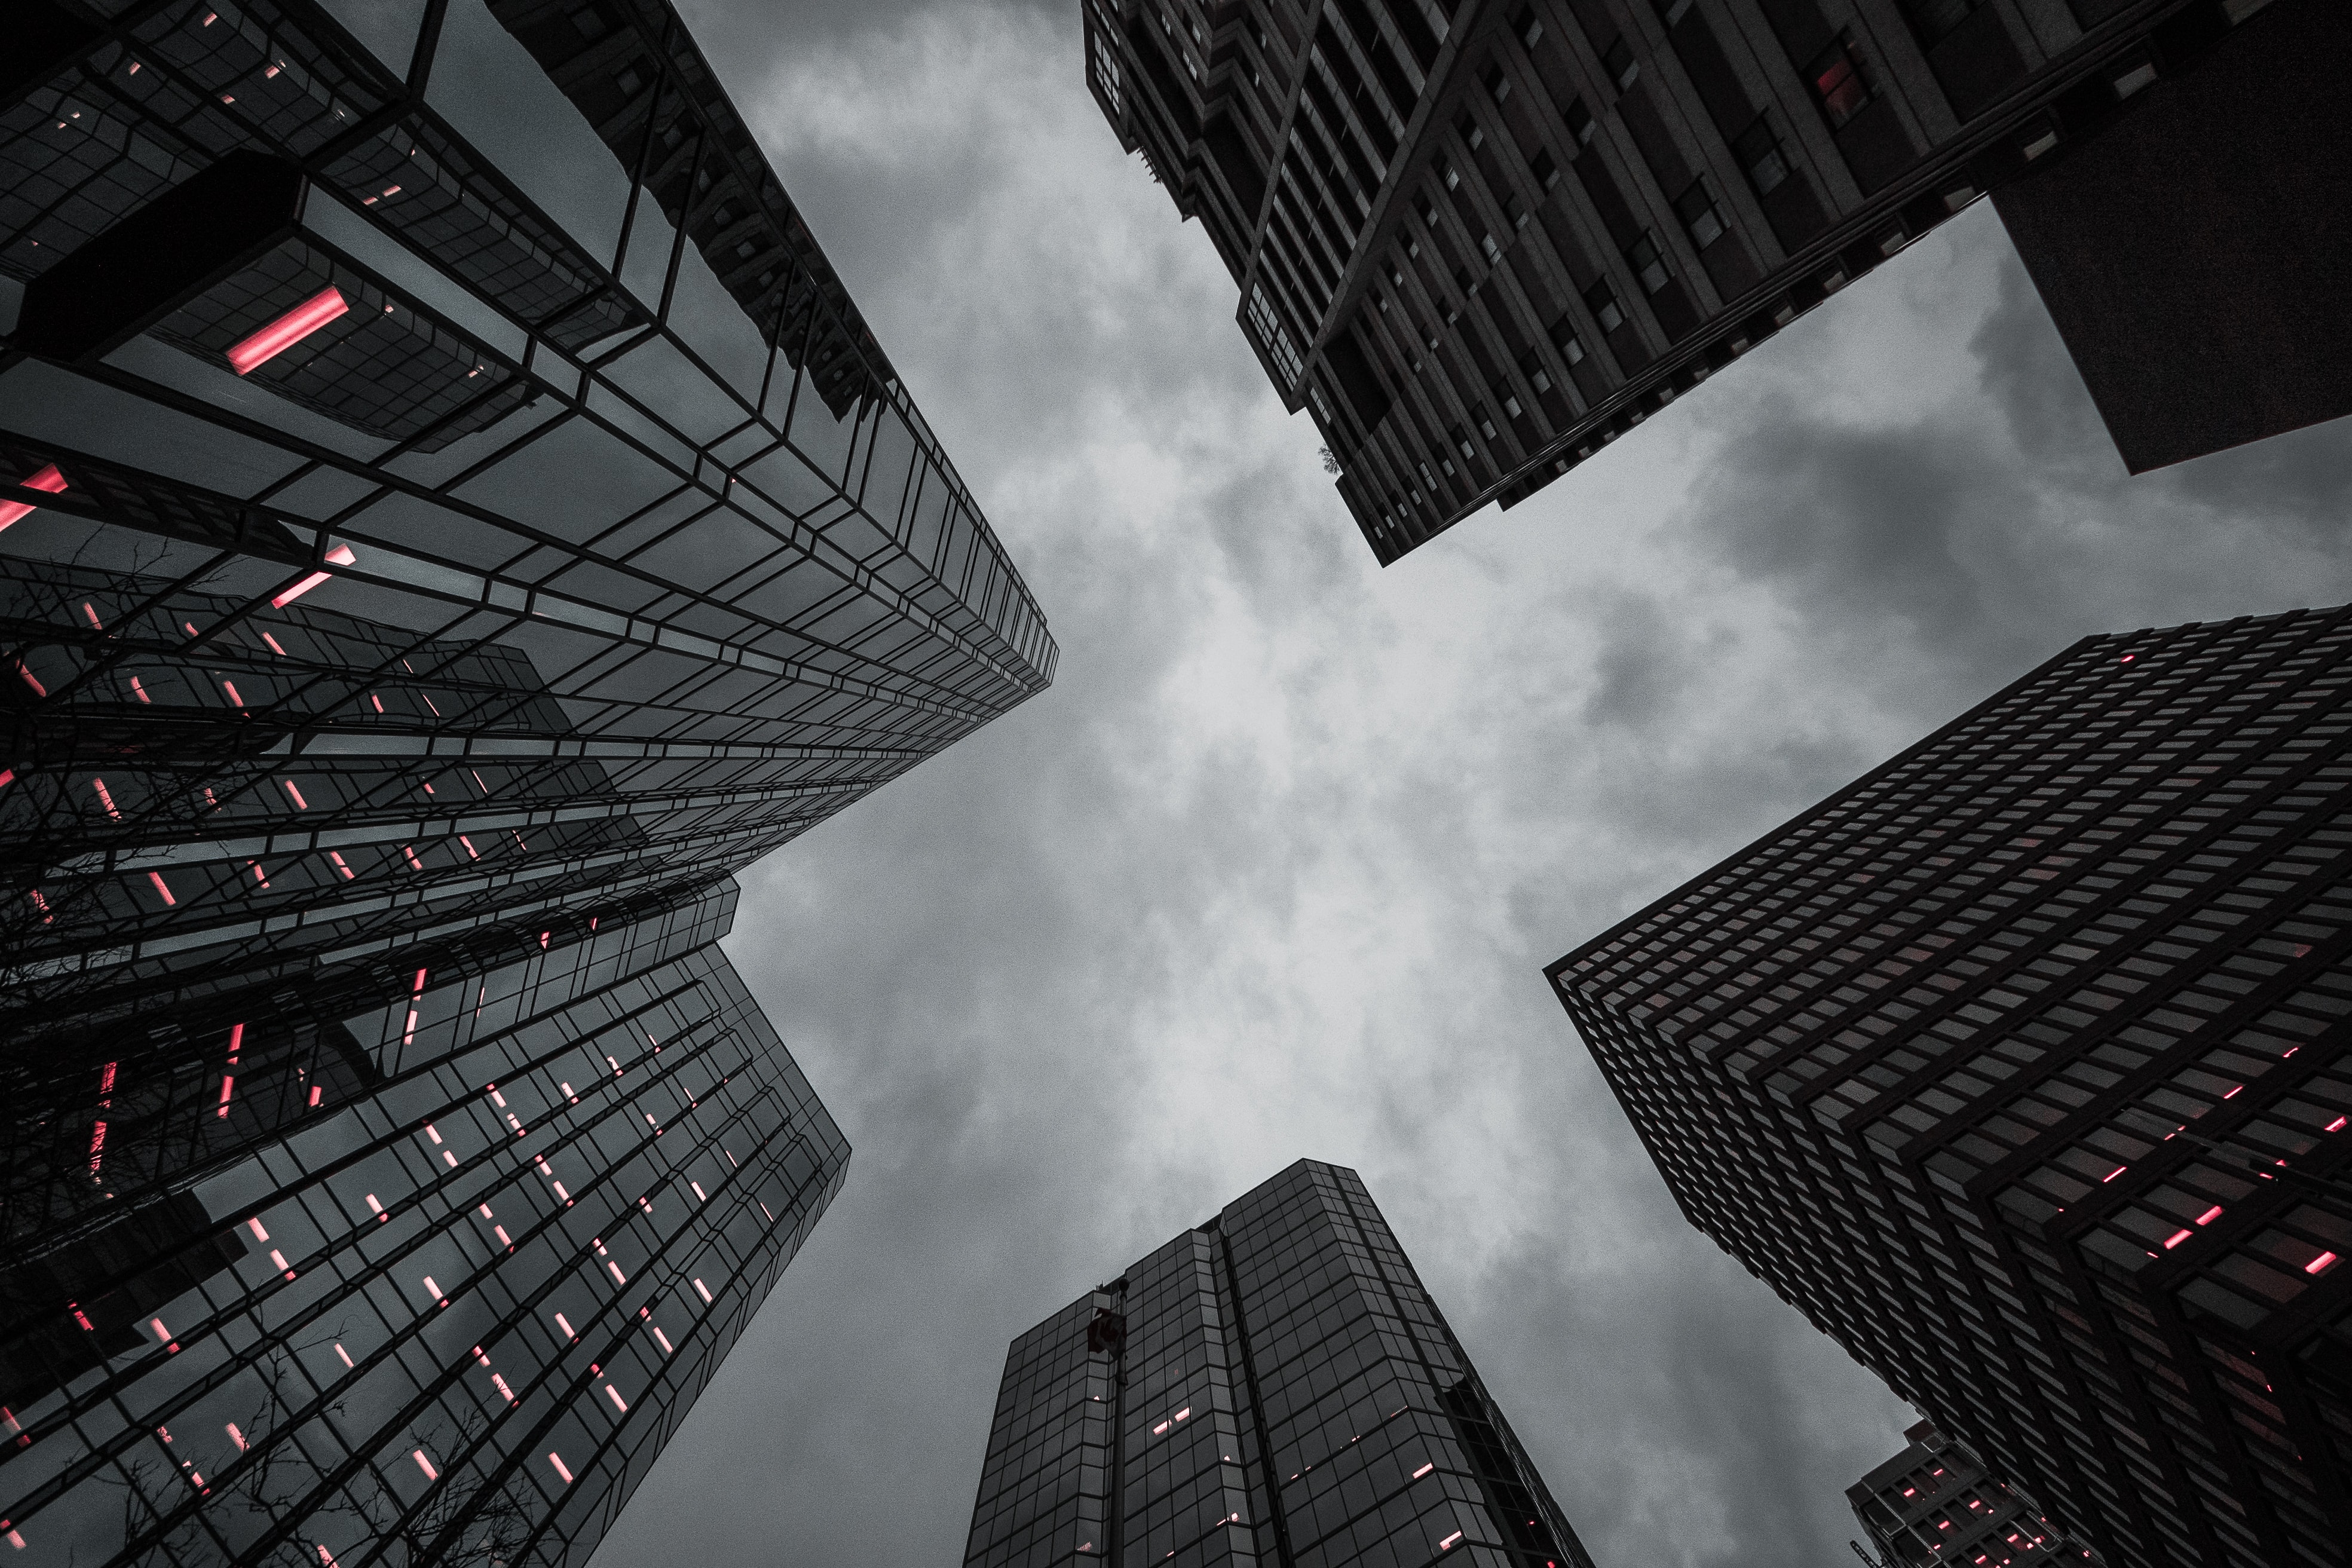 worm's eye-view of high-rise building under the cloudy sky